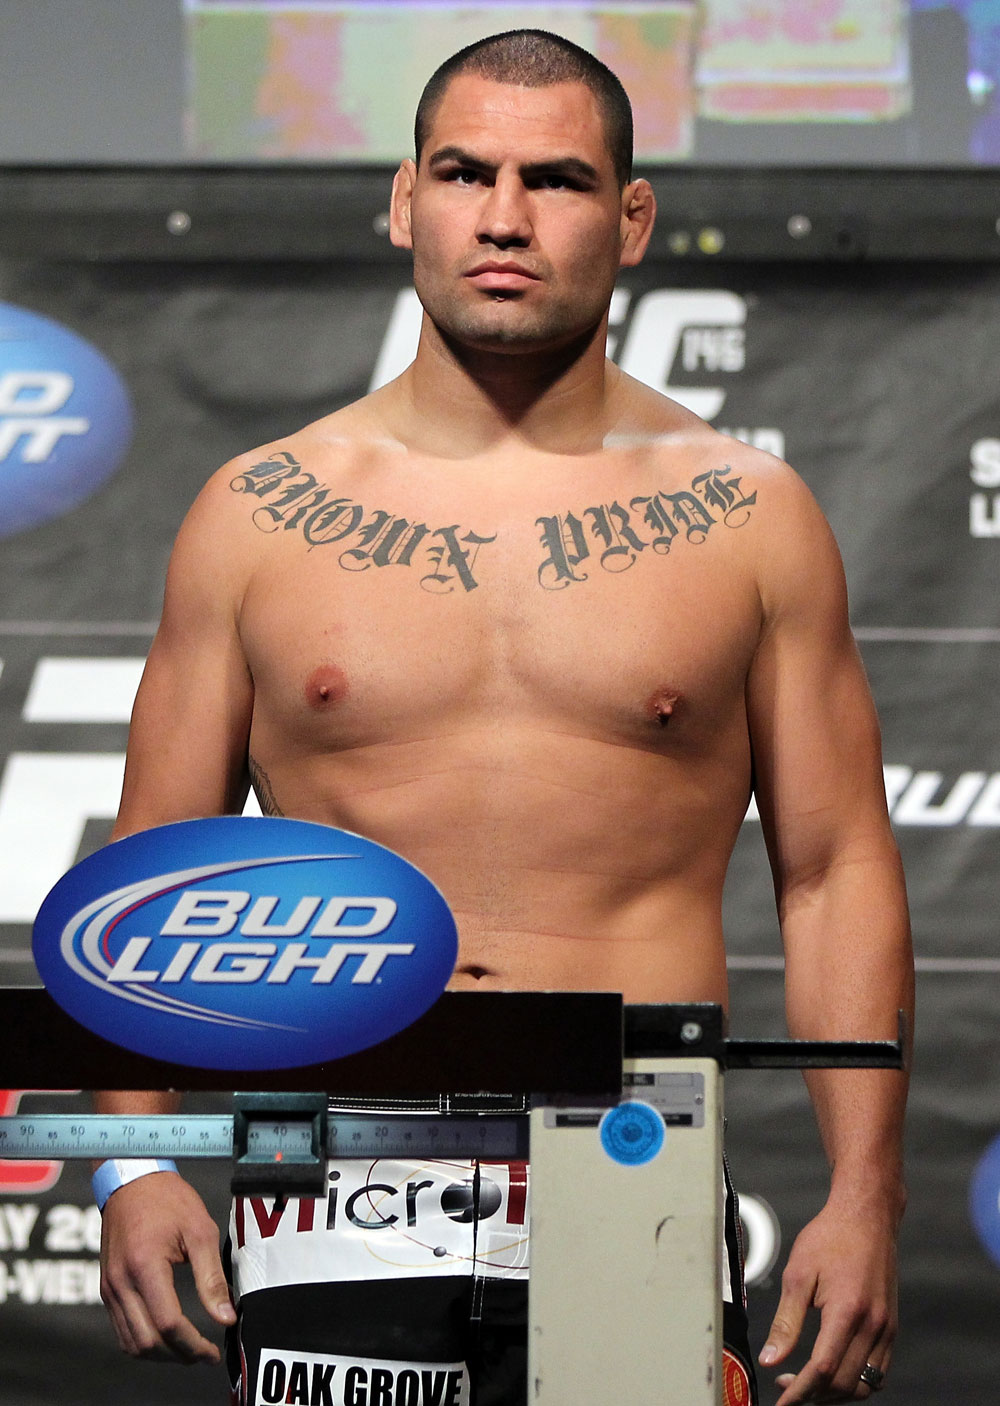 LAS VEGAS, NV - MAY 25:   Cain Velasquez makes weight ahead of his bout against Antonio Silva during the UFC 146 official weigh in at the MGM Grand Garden Arena on May 25, 2012 in Las Vegas, Nevada.  (Photo by Josh Hedges/Zuffa LLC/Zuffa LLC via Getty Images)